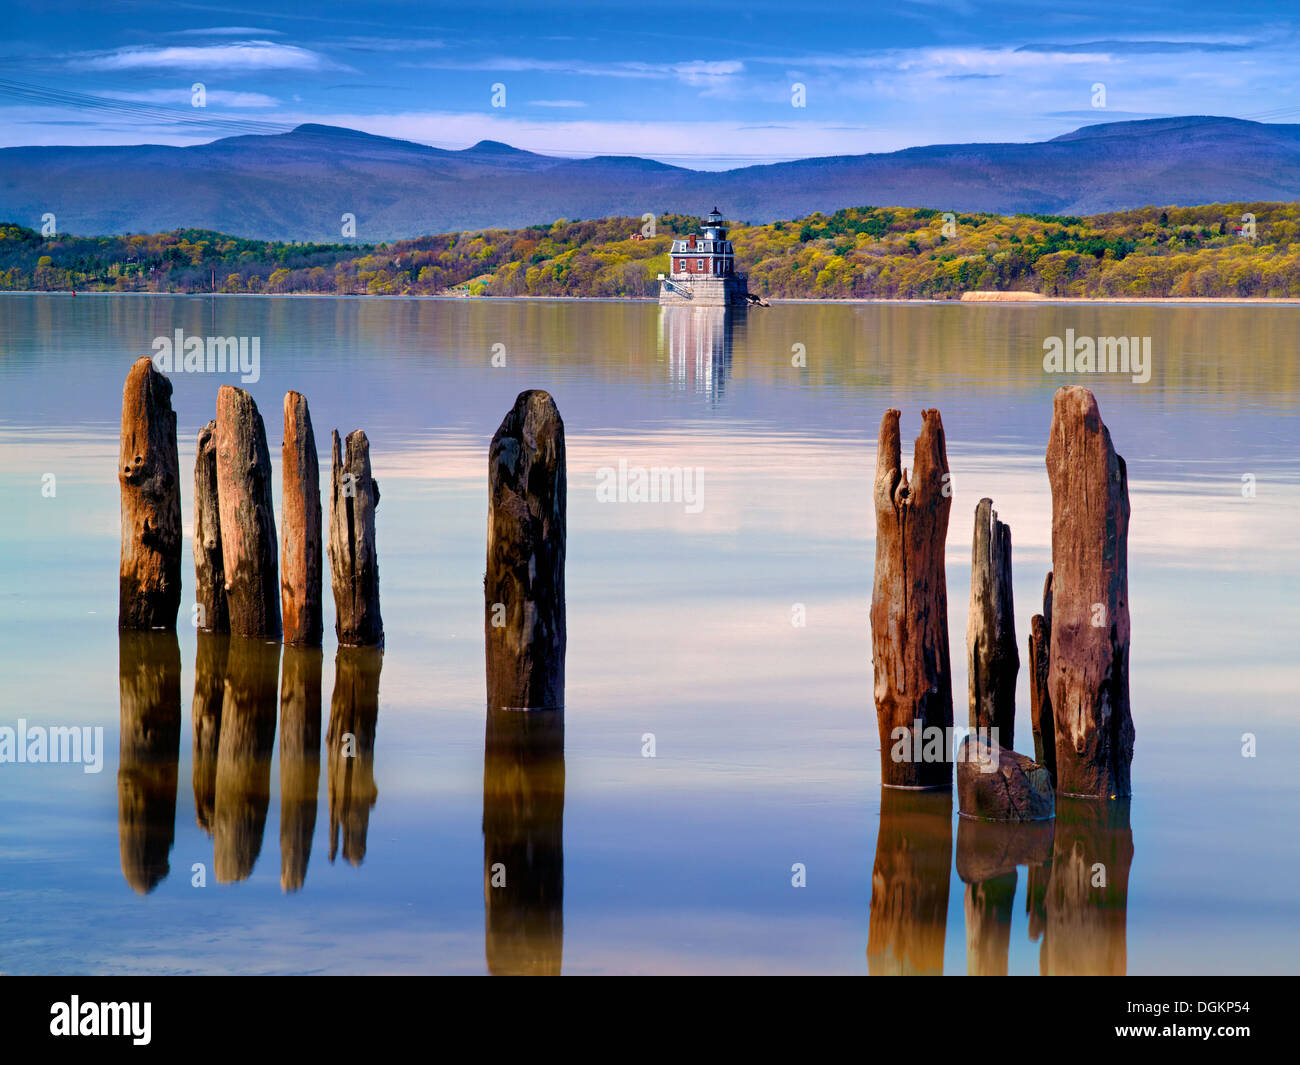 A view across the Hudson River during autumn. - Stock Image